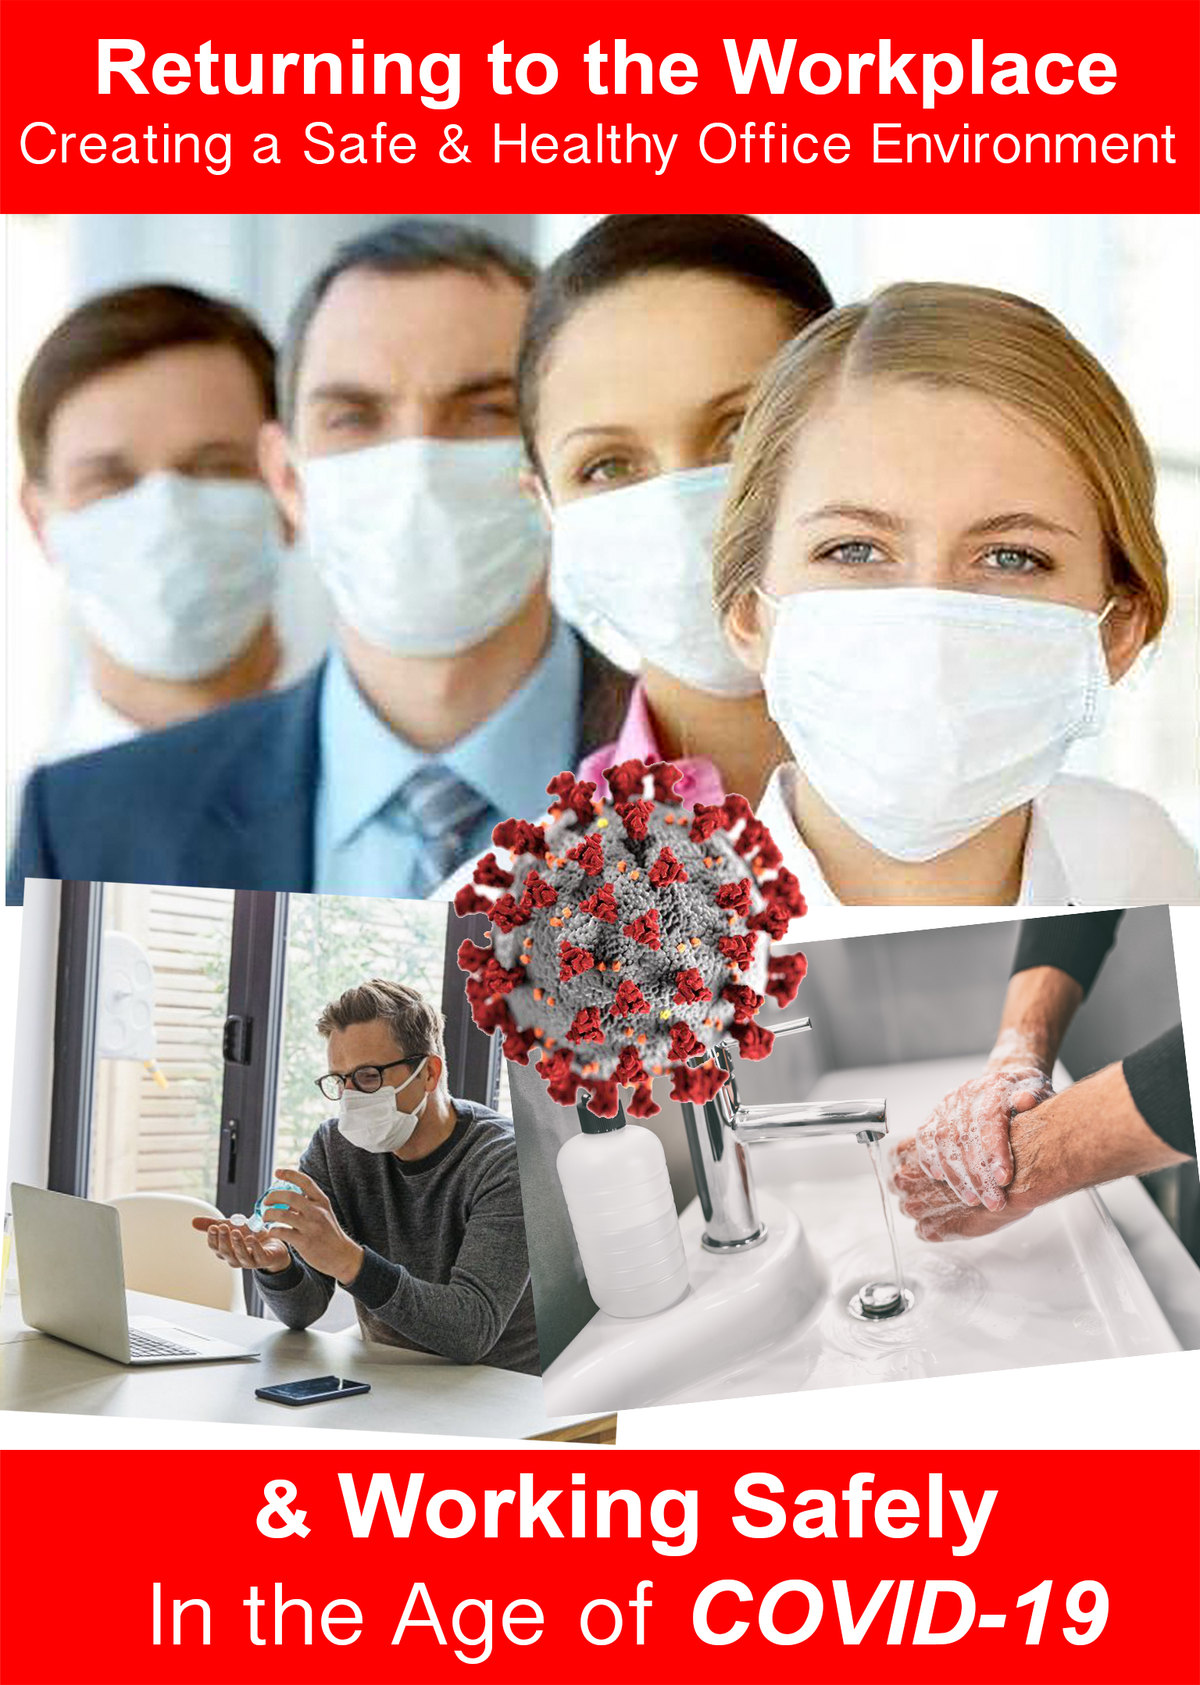 L7082 - Returning to the Workplace - Creating a Safe and Healthy Office Environment and Working Safely in the Age of the COVID-19 Pandemic